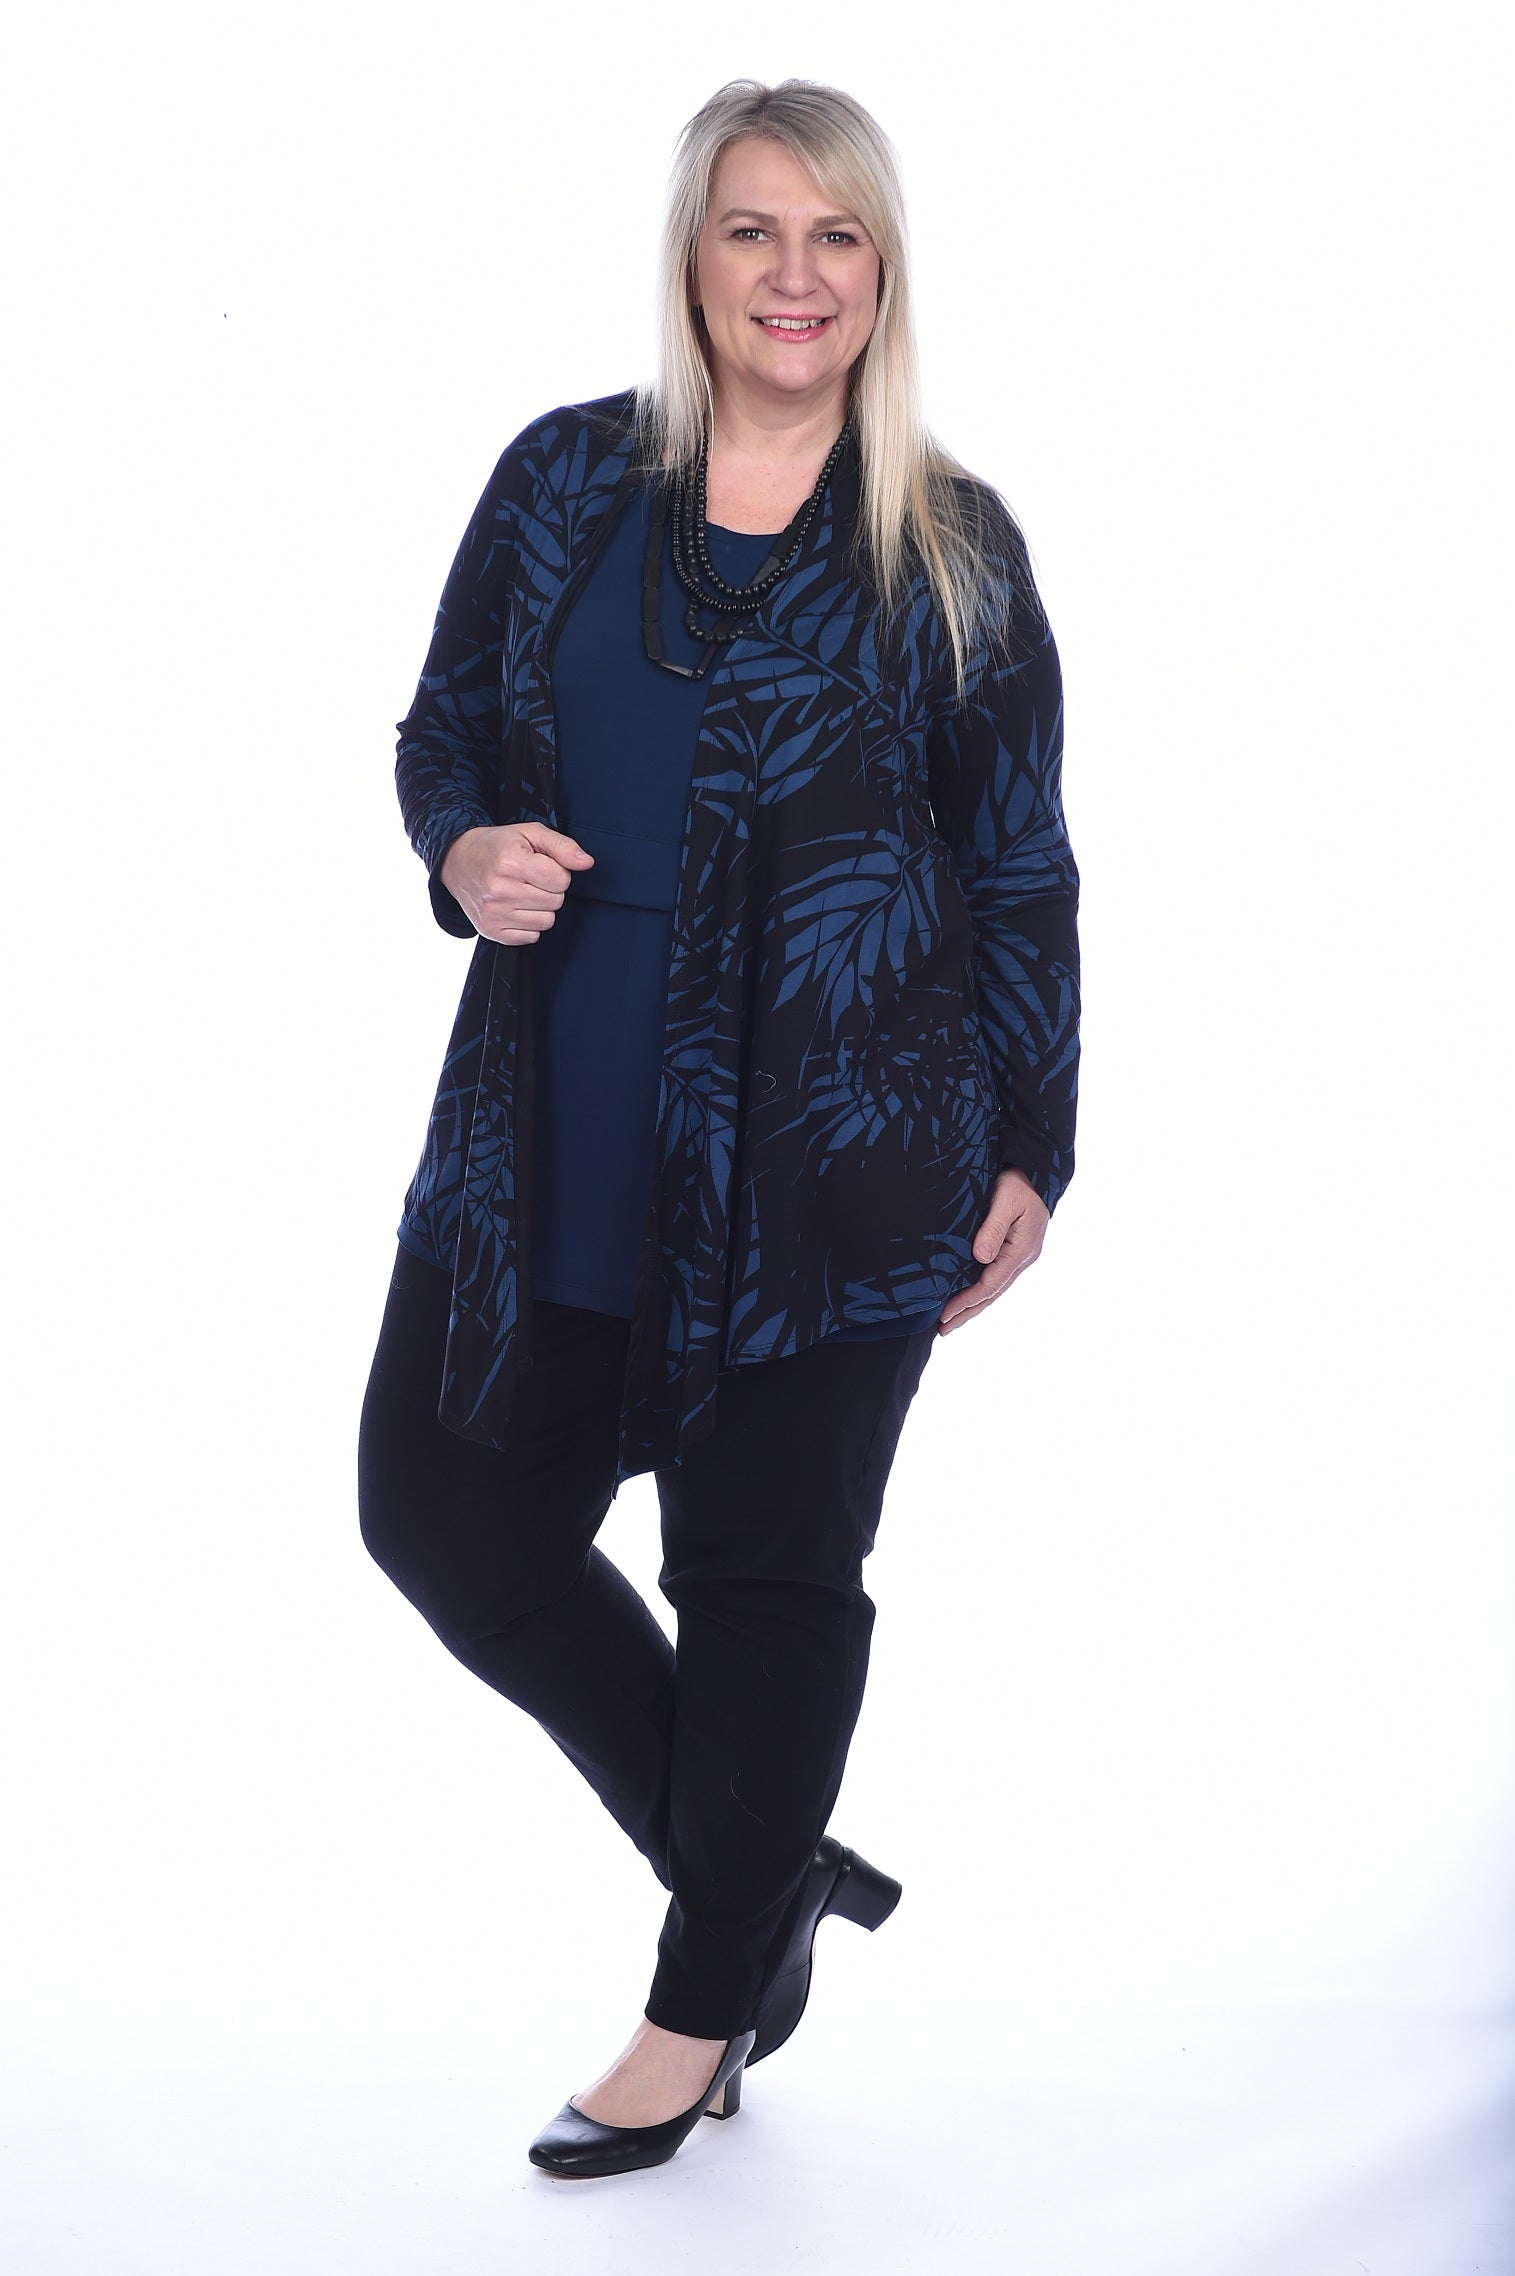 Jacket Casual - Navy Palm - PRINT CLEARANCE